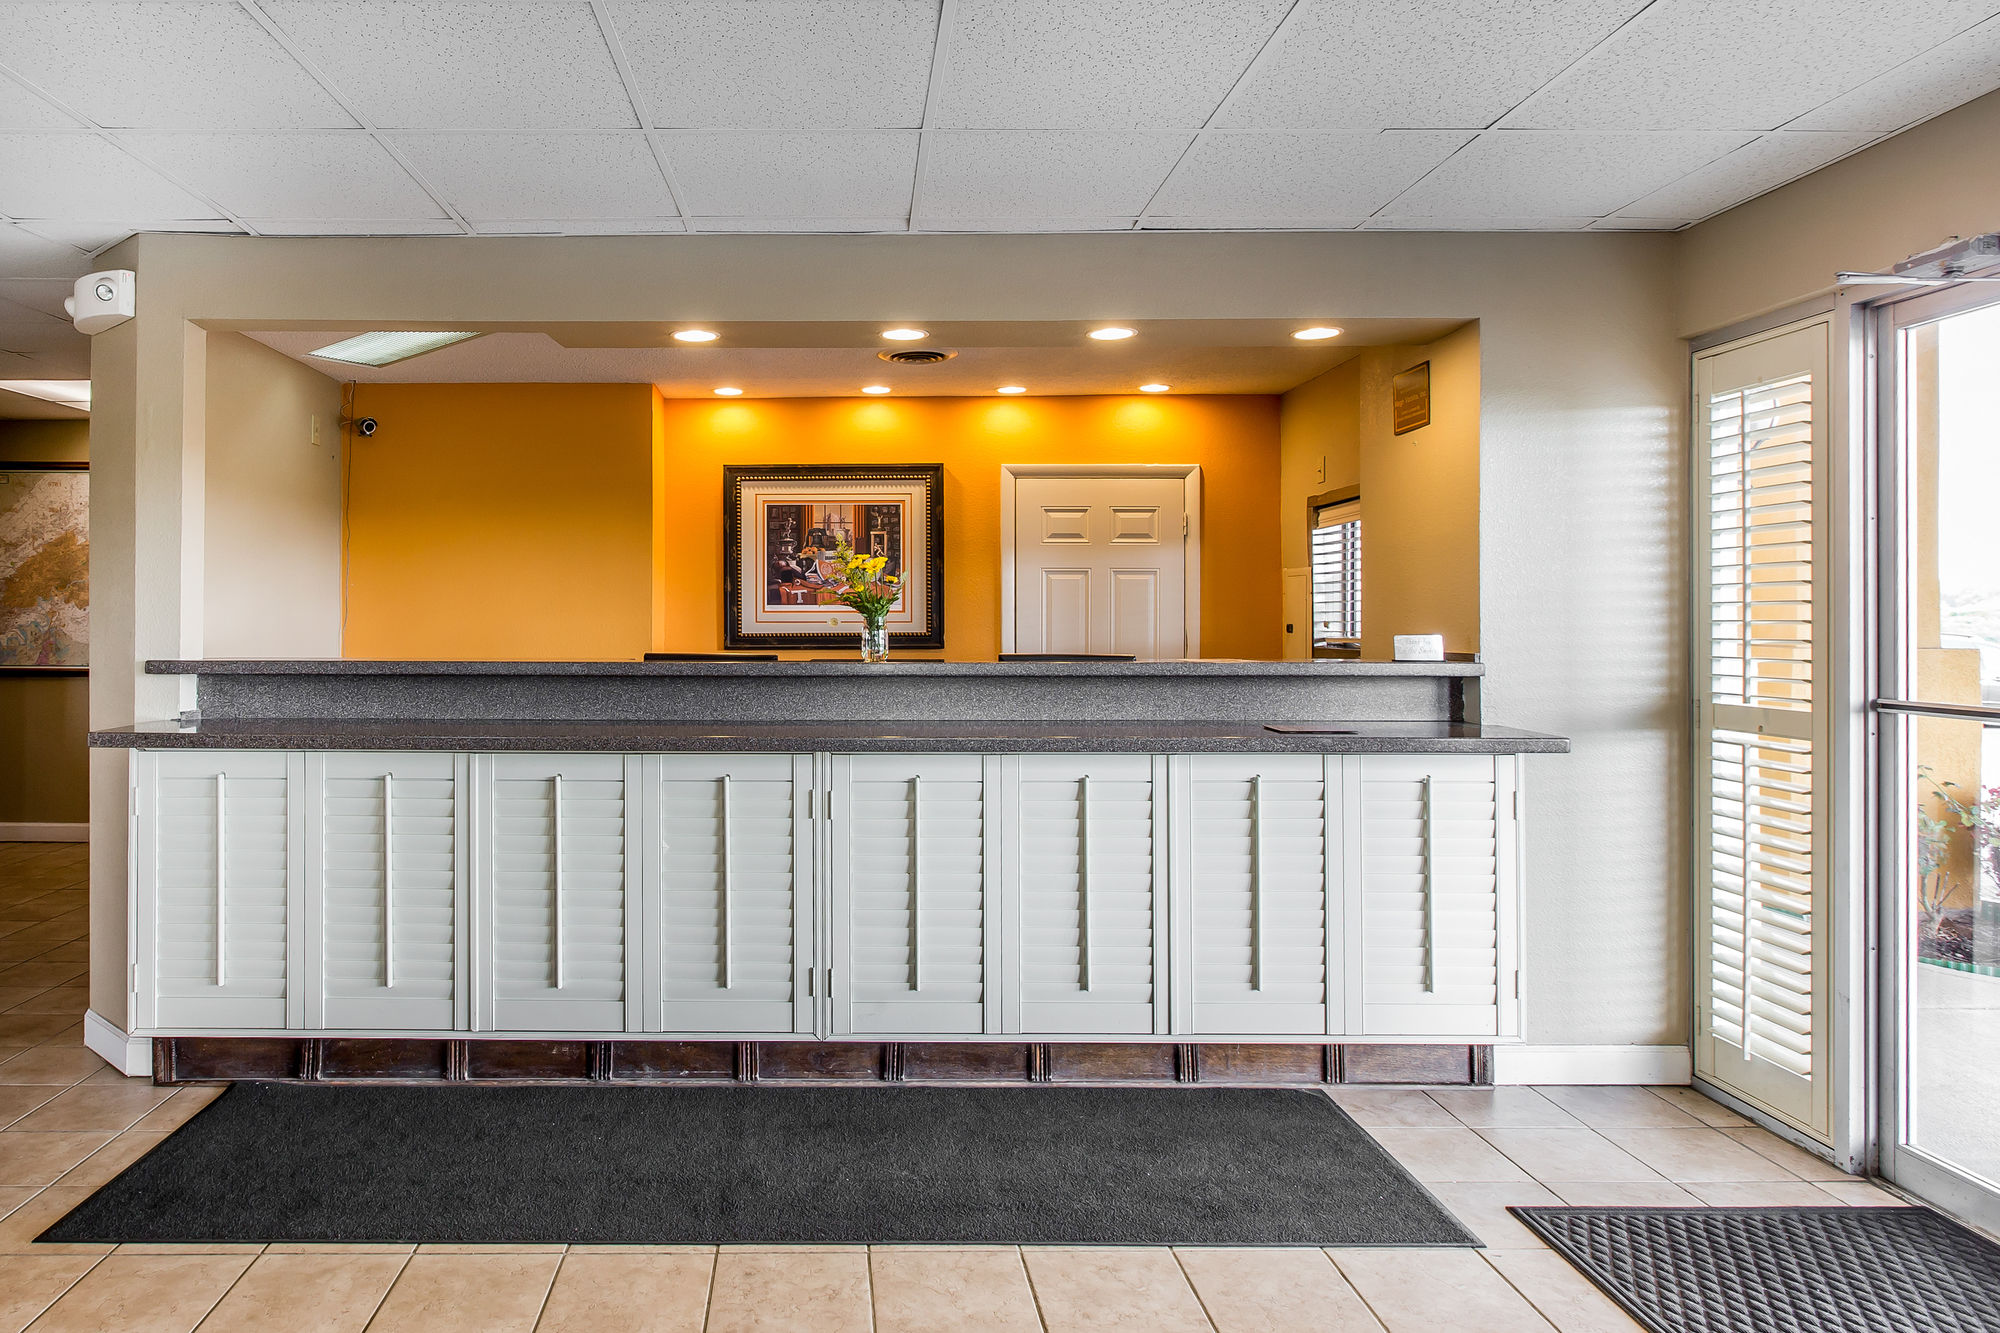 EconoLodge Inn & Suites in Knoxville, TN